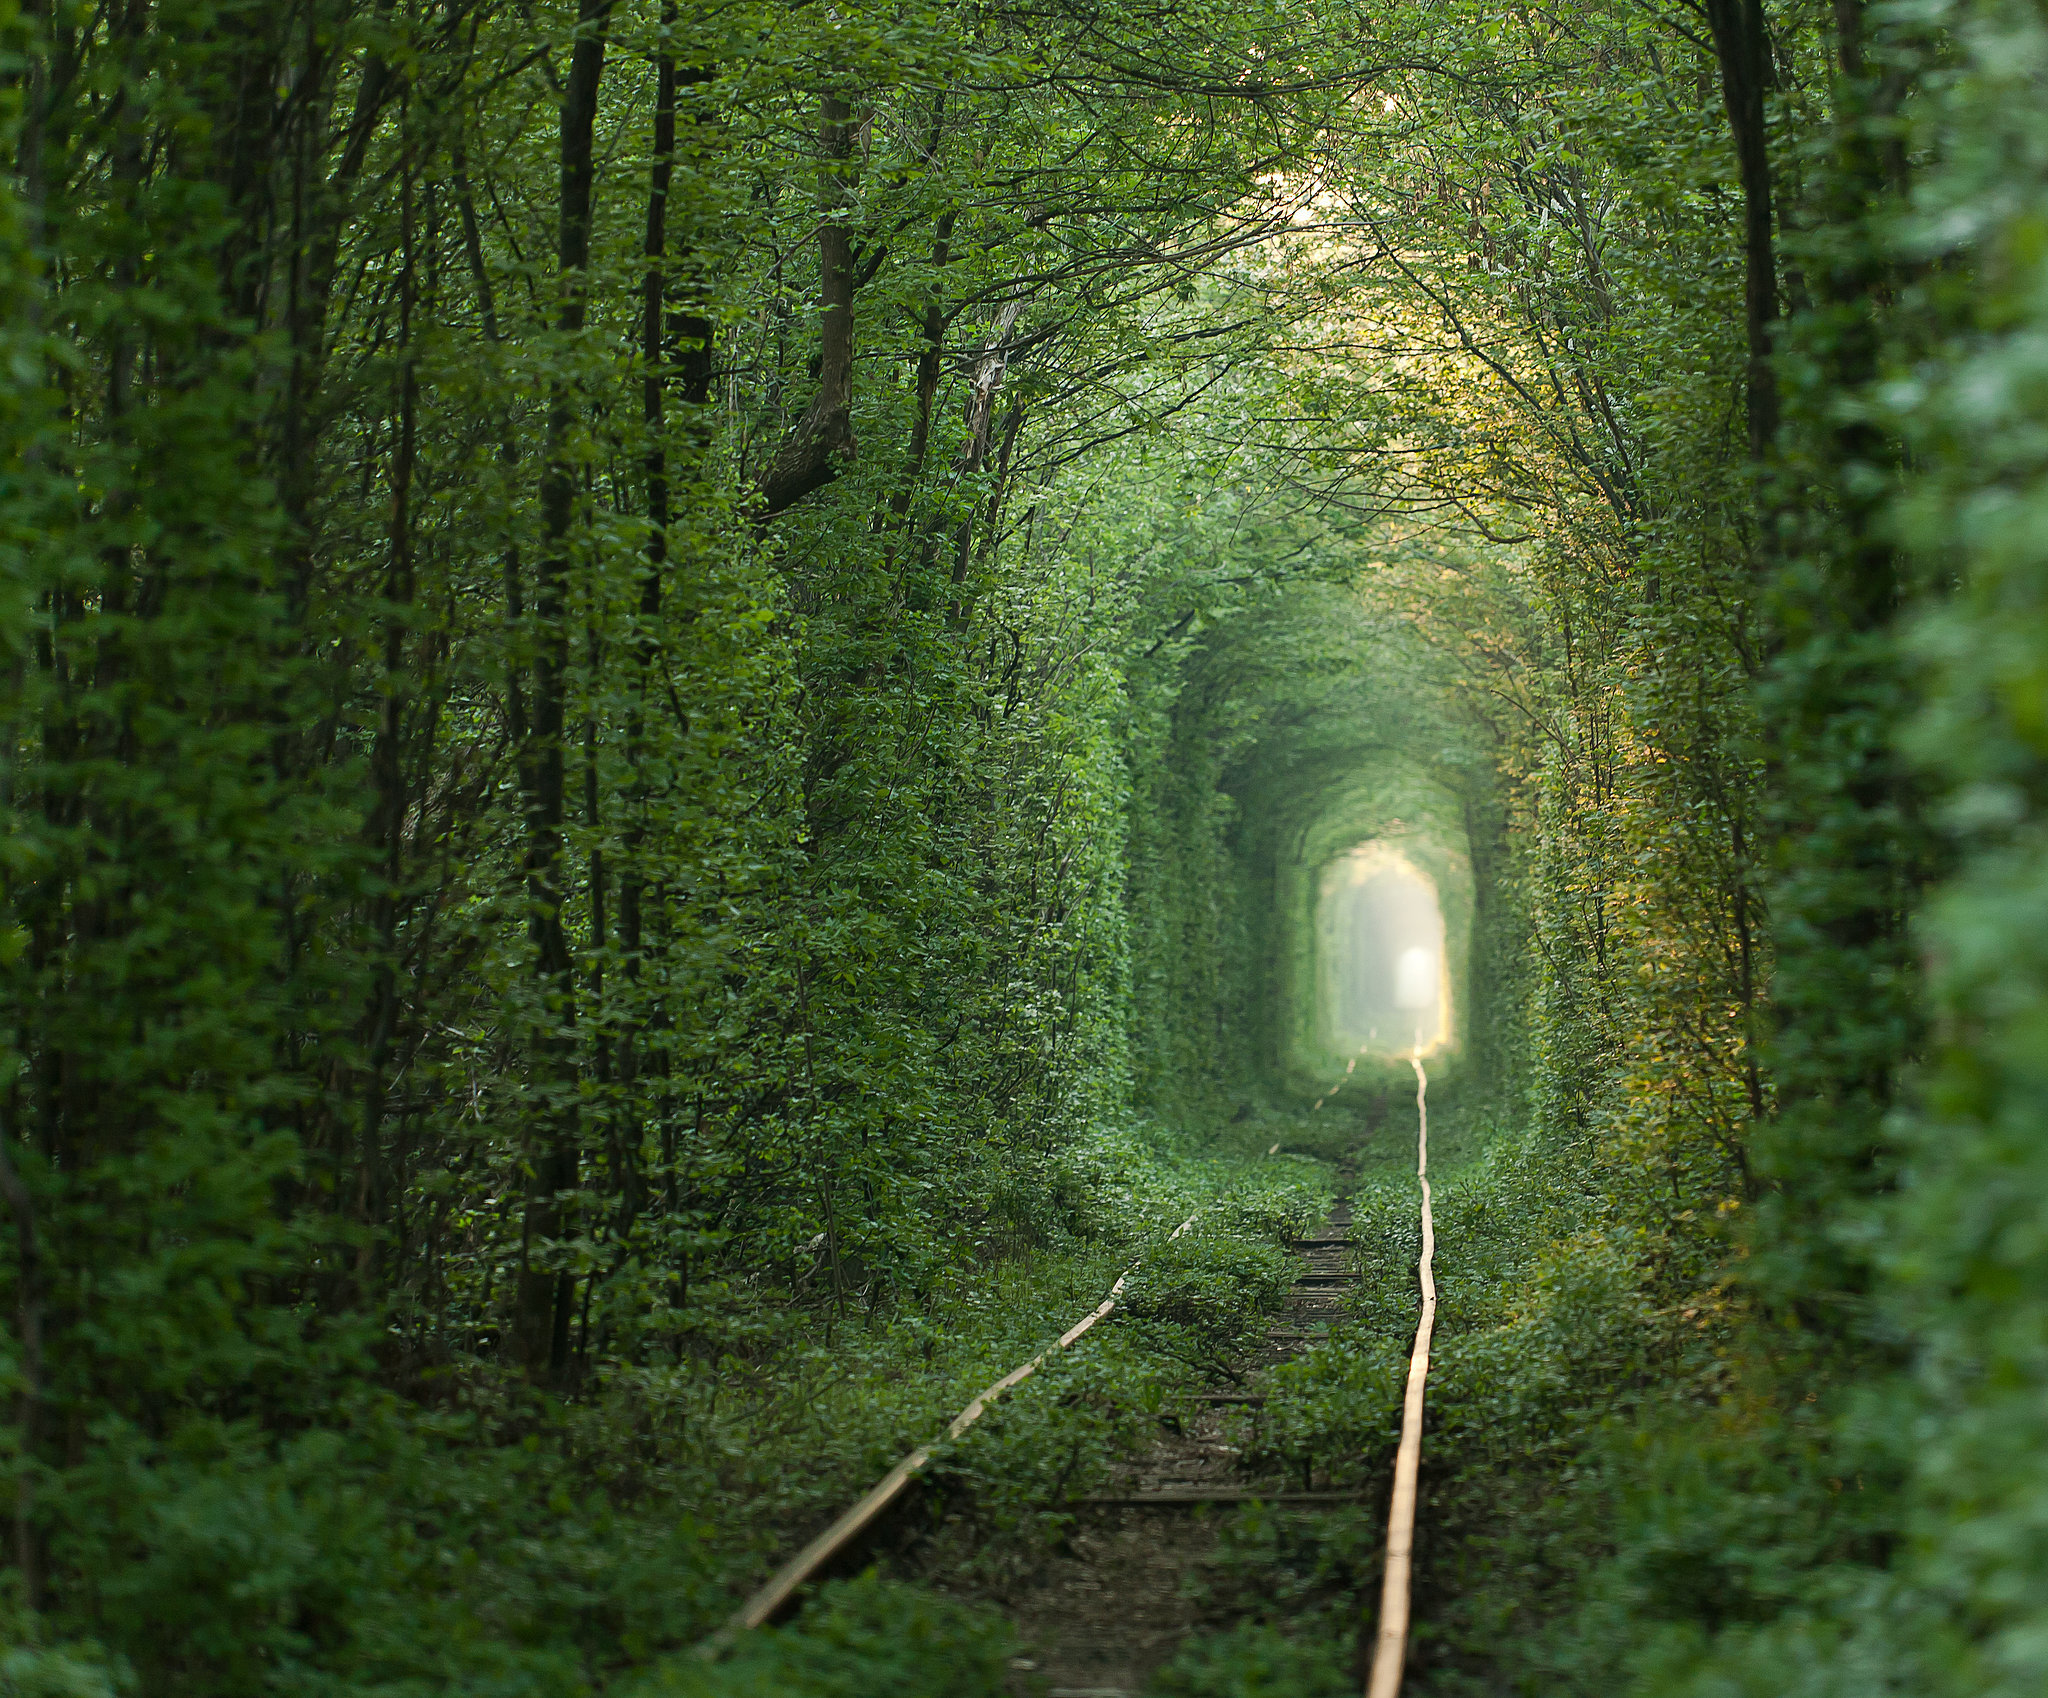 Tunnel of Love, one of the most romantic travels by train of the world